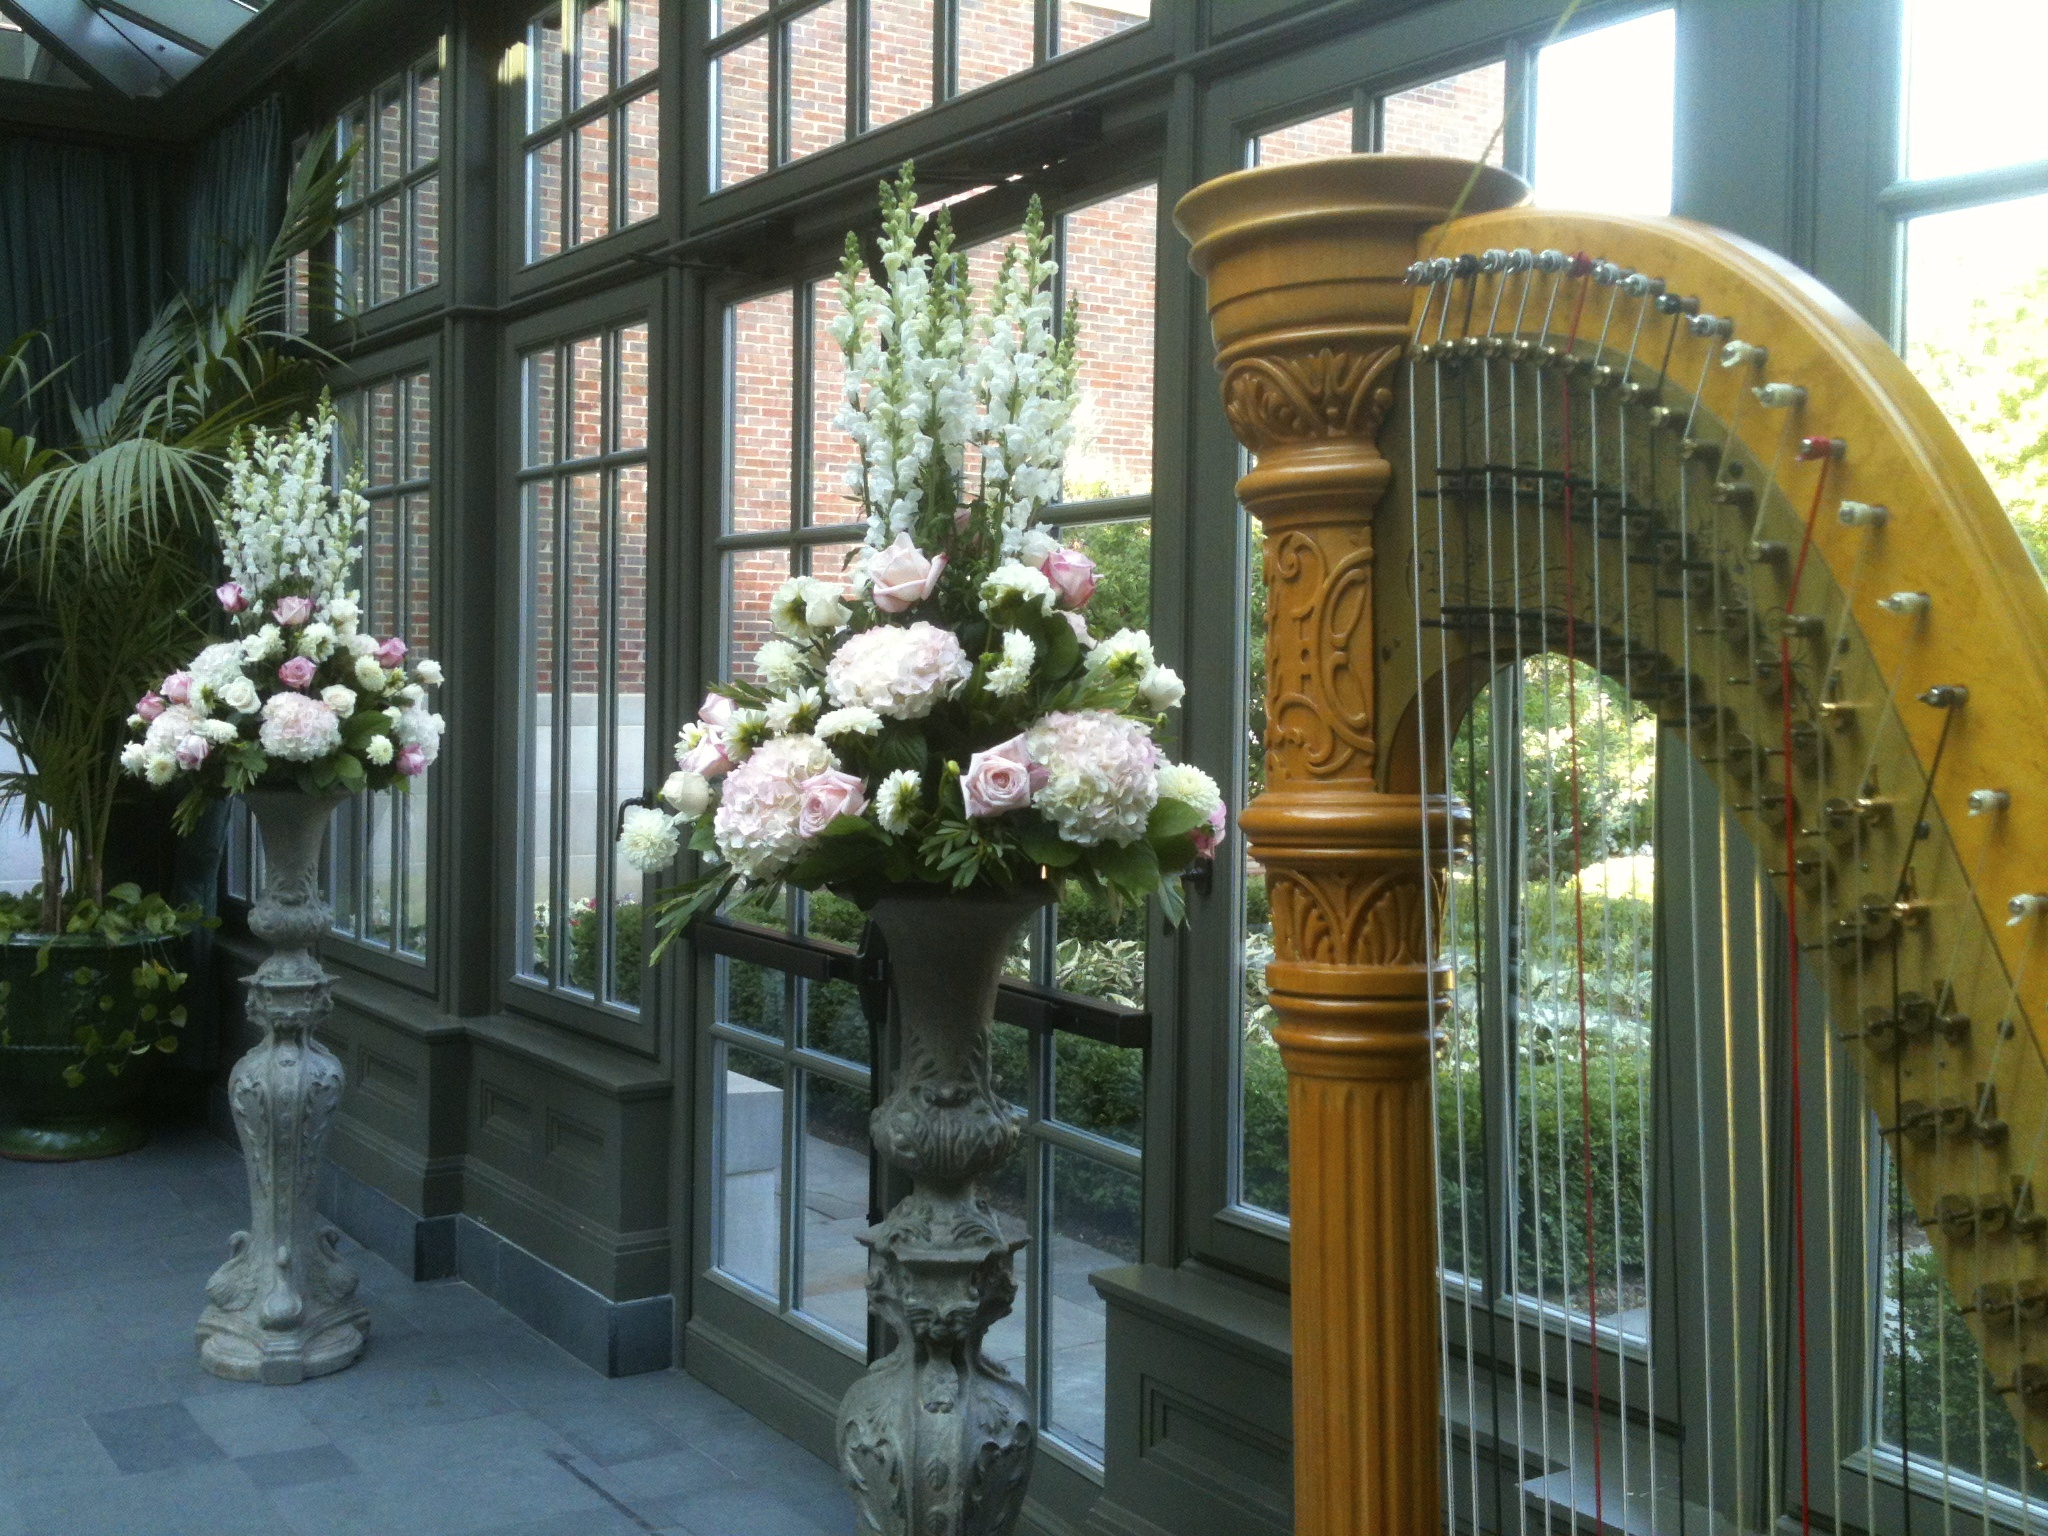 The flowers and the harp go together so beautifully in the conservatory.